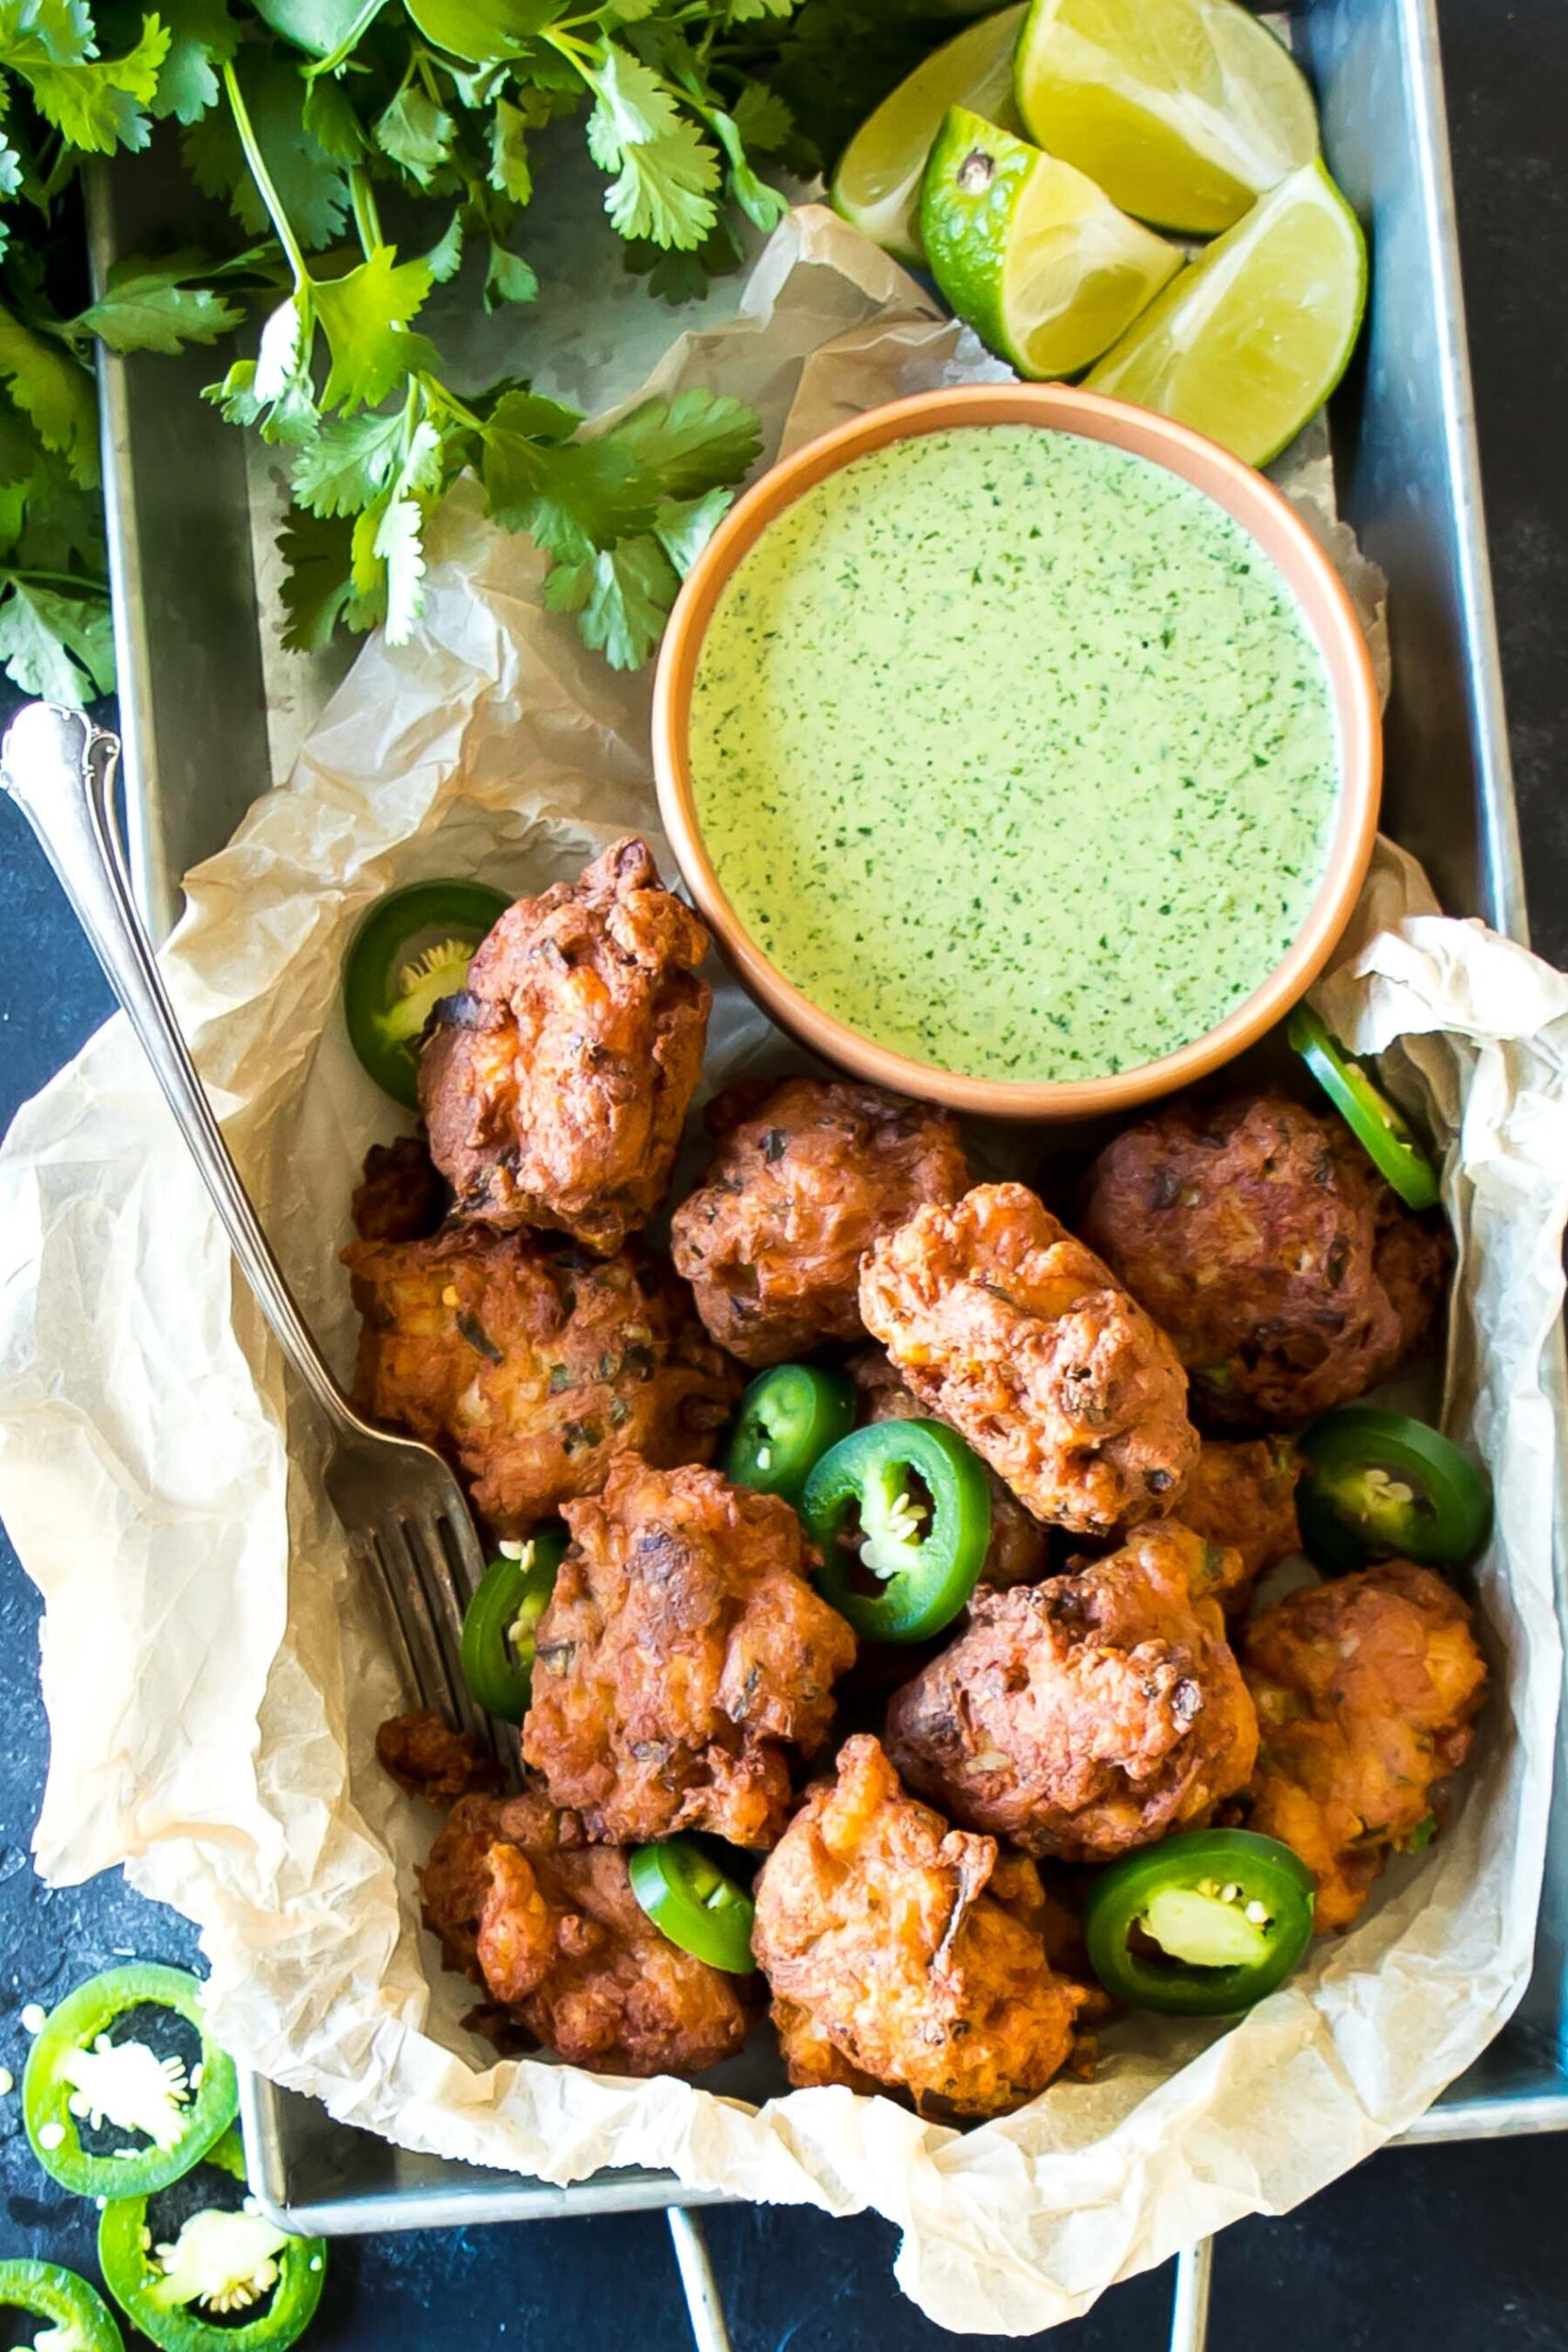 Top-down of Keto Hushpuppies in a tray, with a bowl jalapeno sauce directly behind